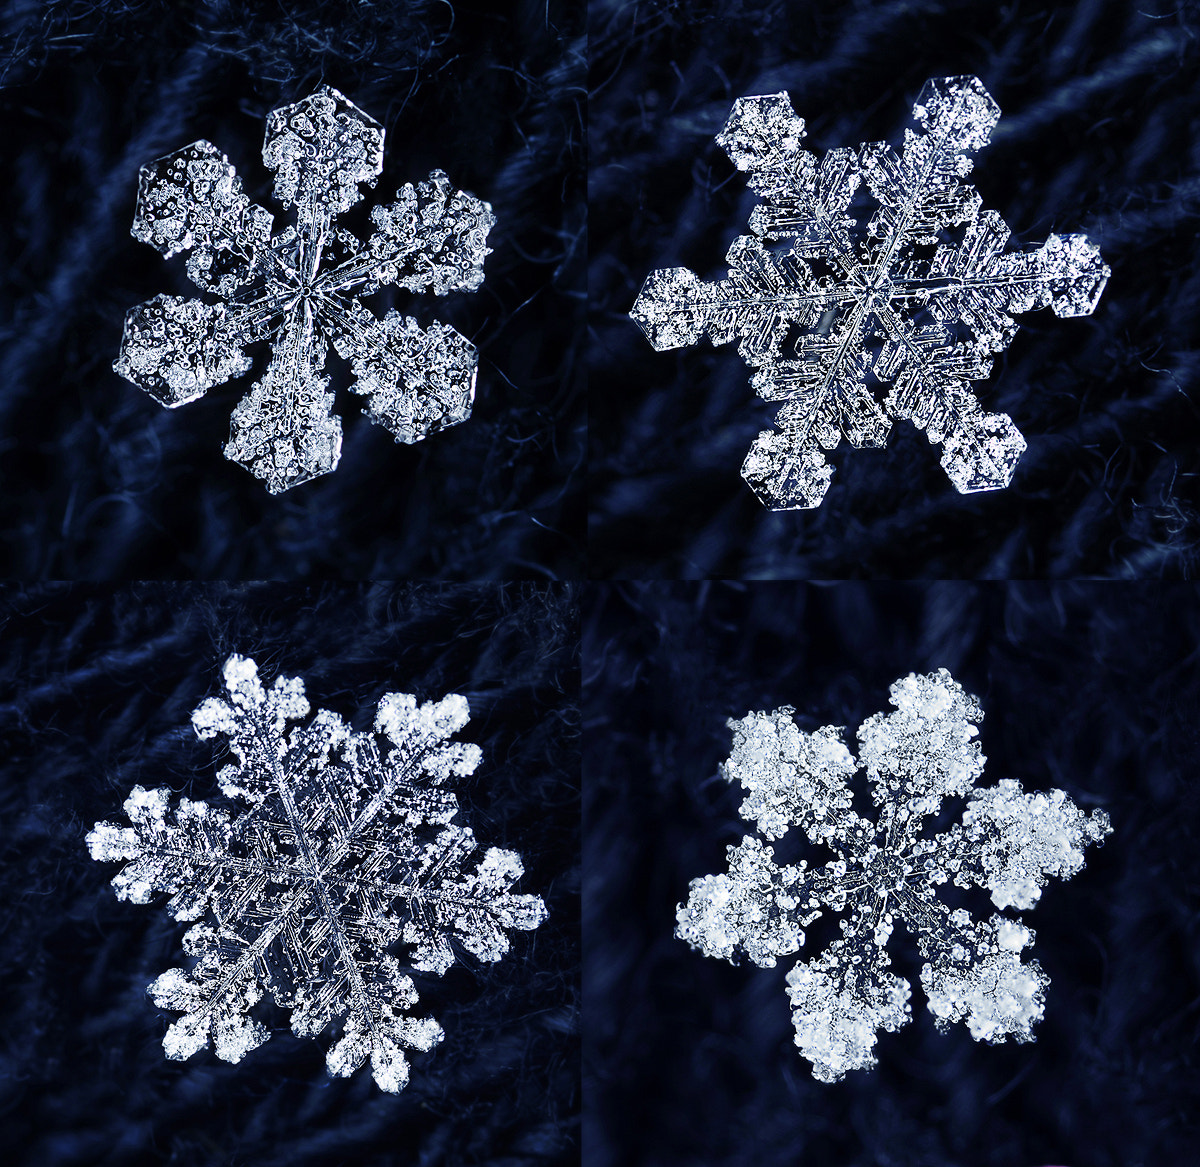 Photograph Snowflakes by Dusan Beno on 500px